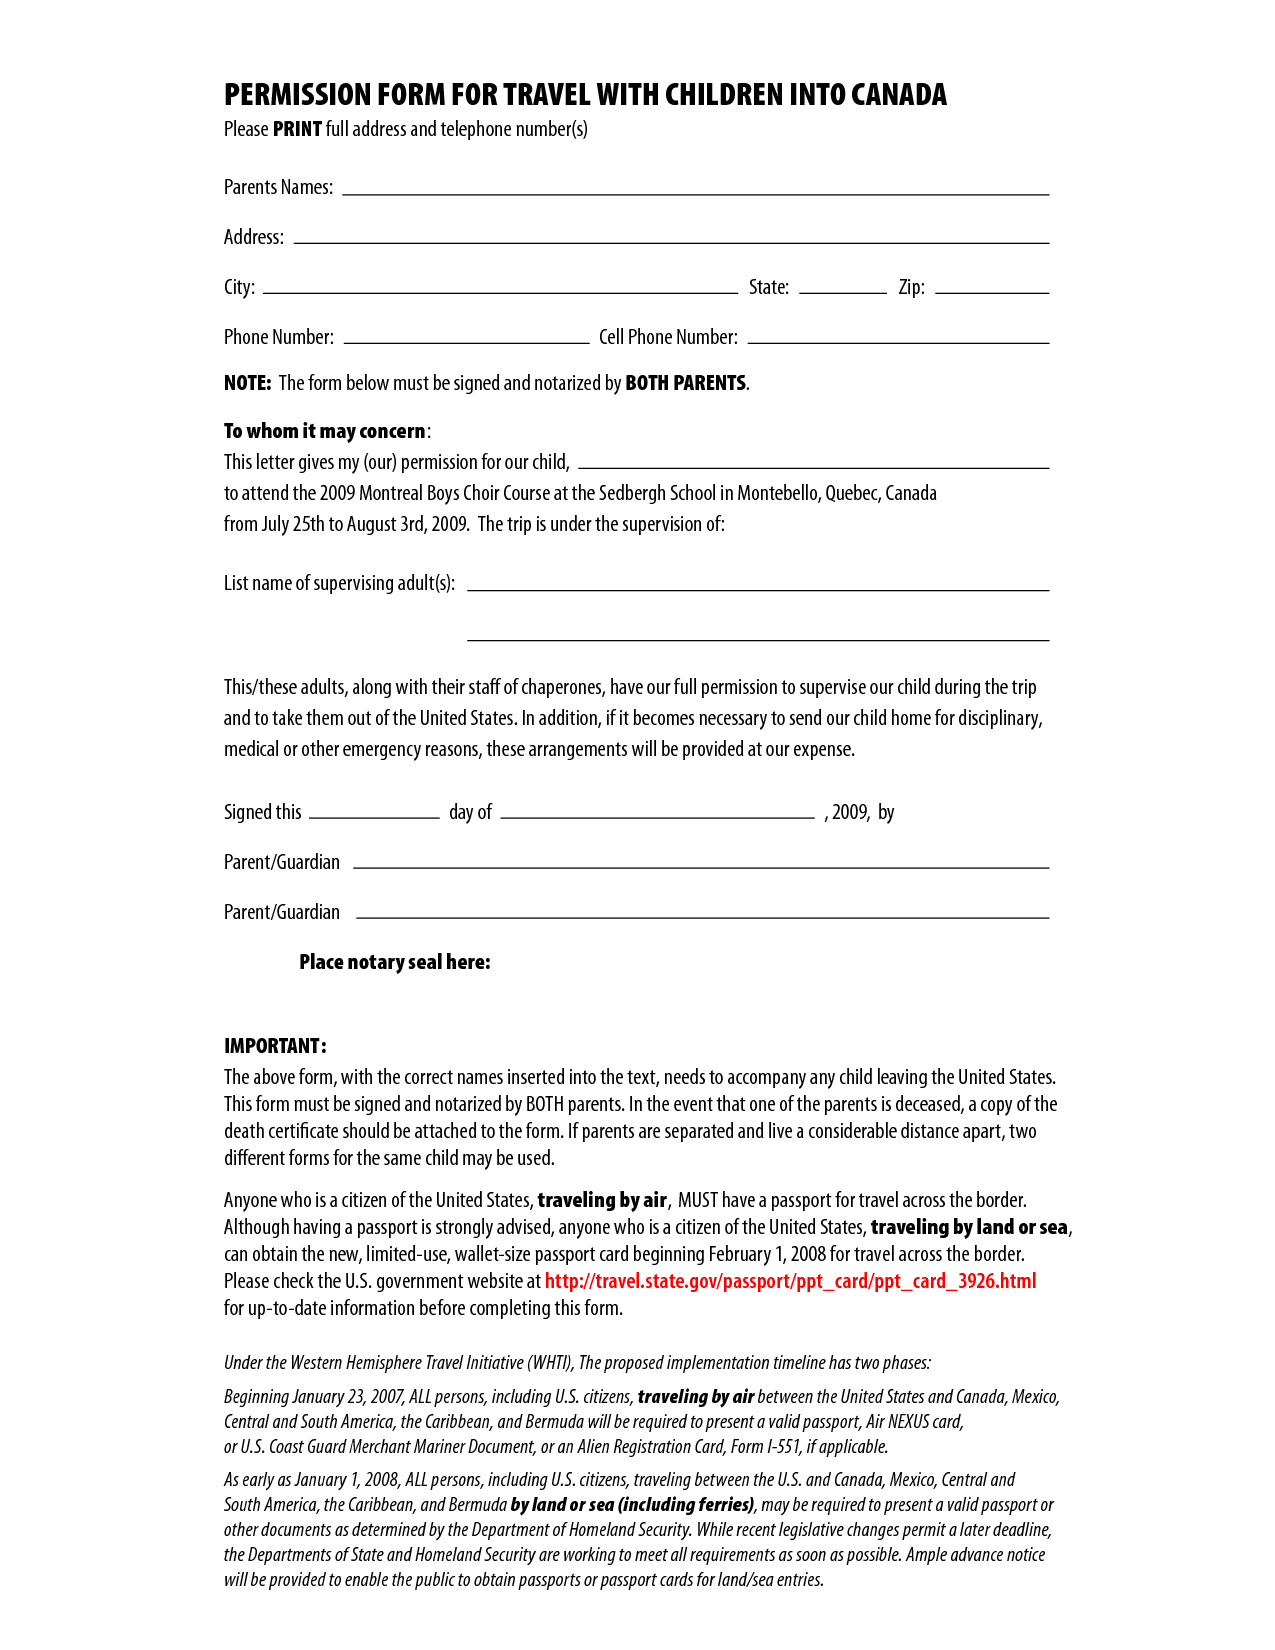 Permission Form For Travel With Children Into Canada By Csgirla